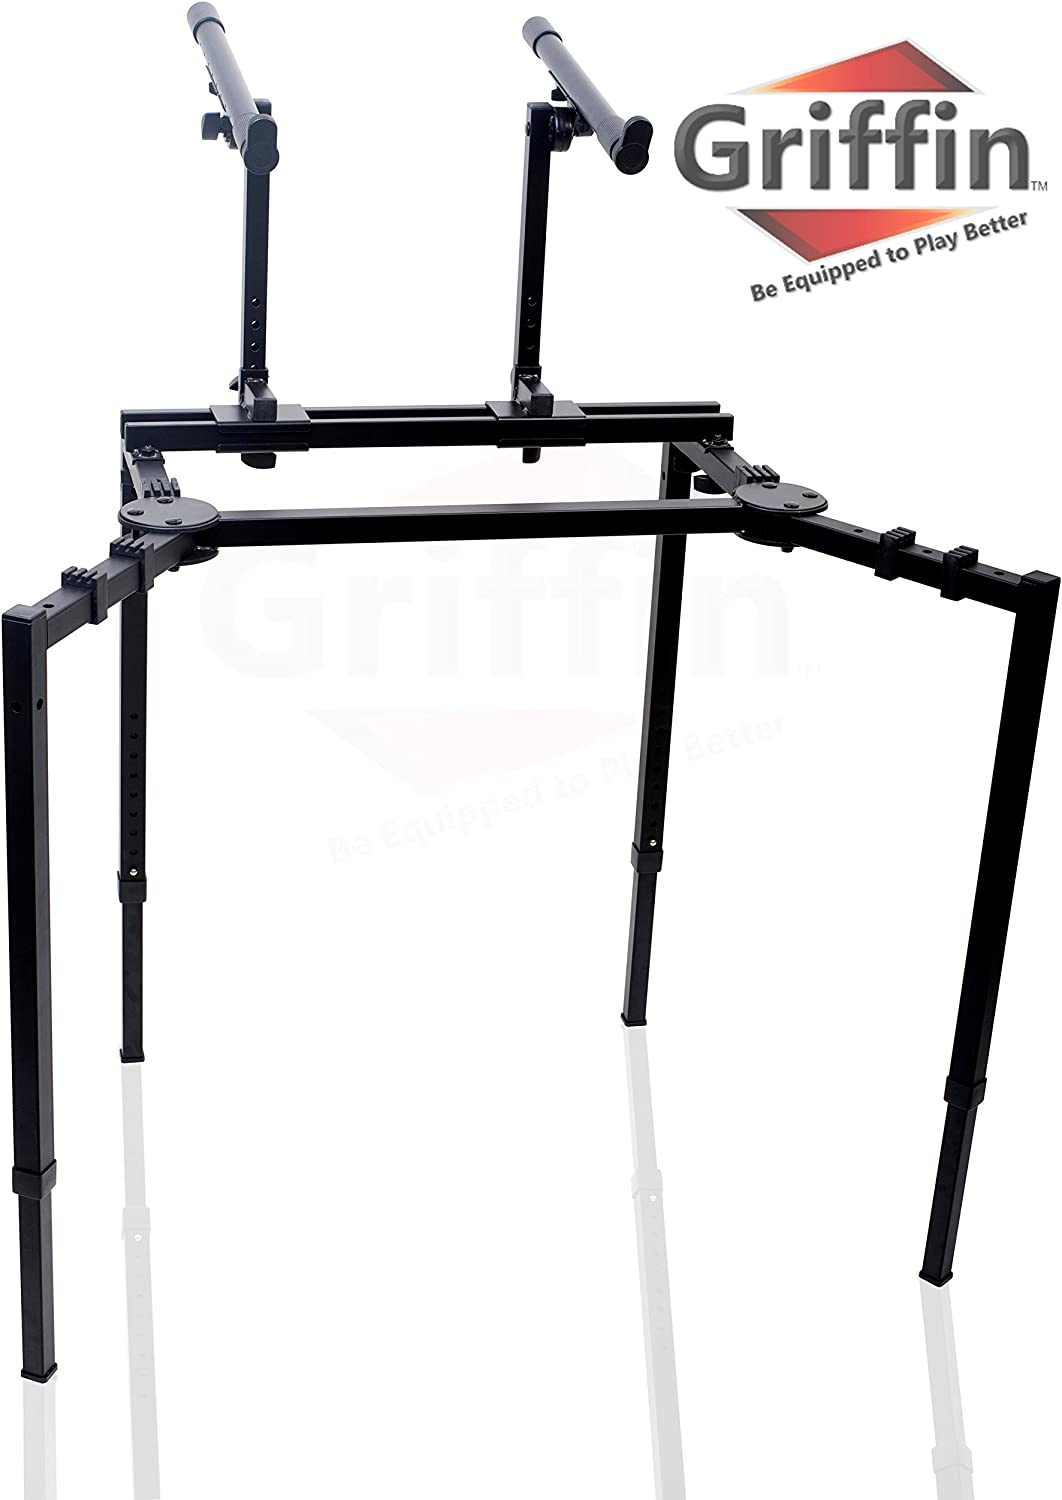 Double Piano Keyboard and Laptop Stand by Griffin | 2 Tier/Dual Portable Studio Mixer Rack for Turntables, DJ Coffins, Speakers, Audio Gear and Music Equipment | Deluxe & Versatile Steel Construction